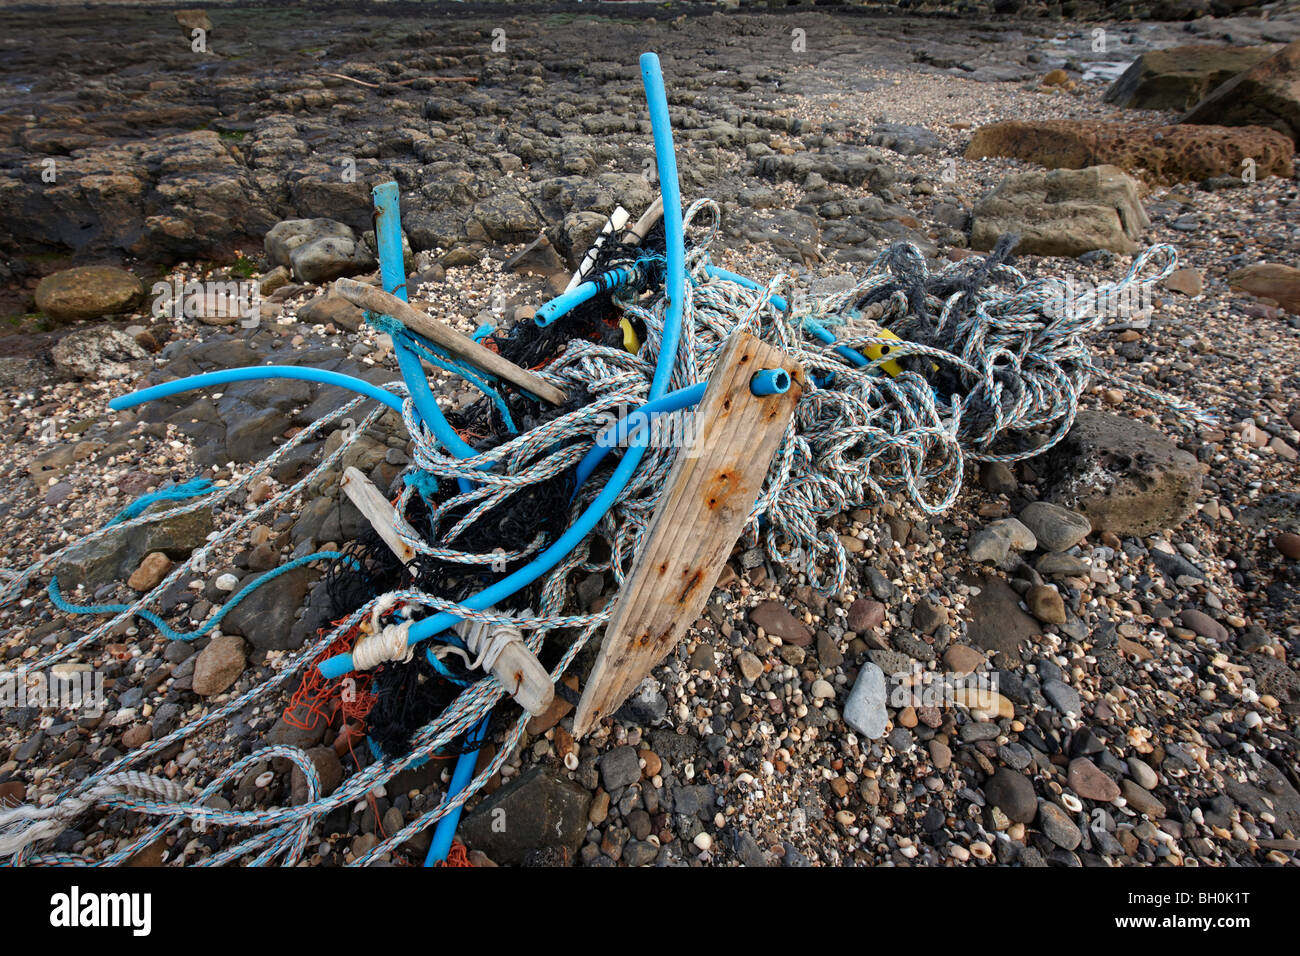 Flotsam on a British beach - Stock Image